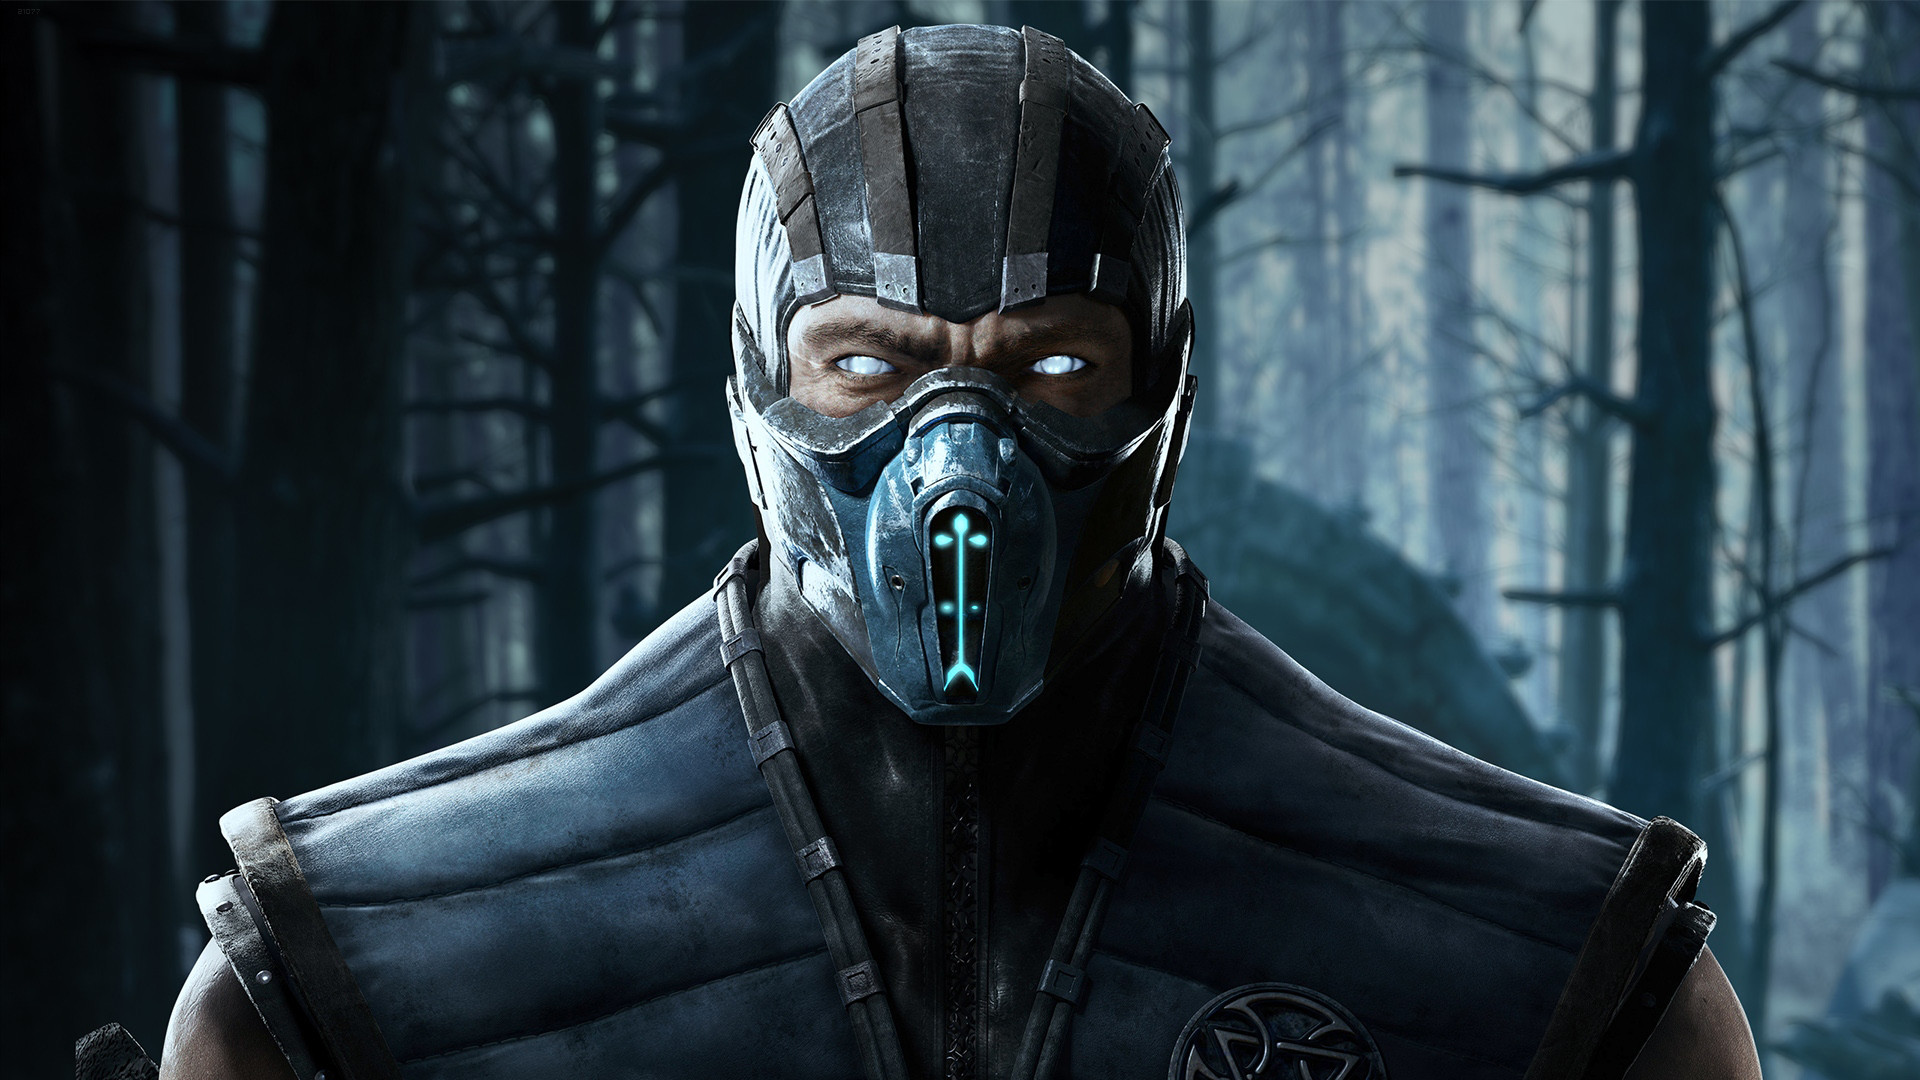 Mortal Kombat X Sub Zero Hd Wallpaper